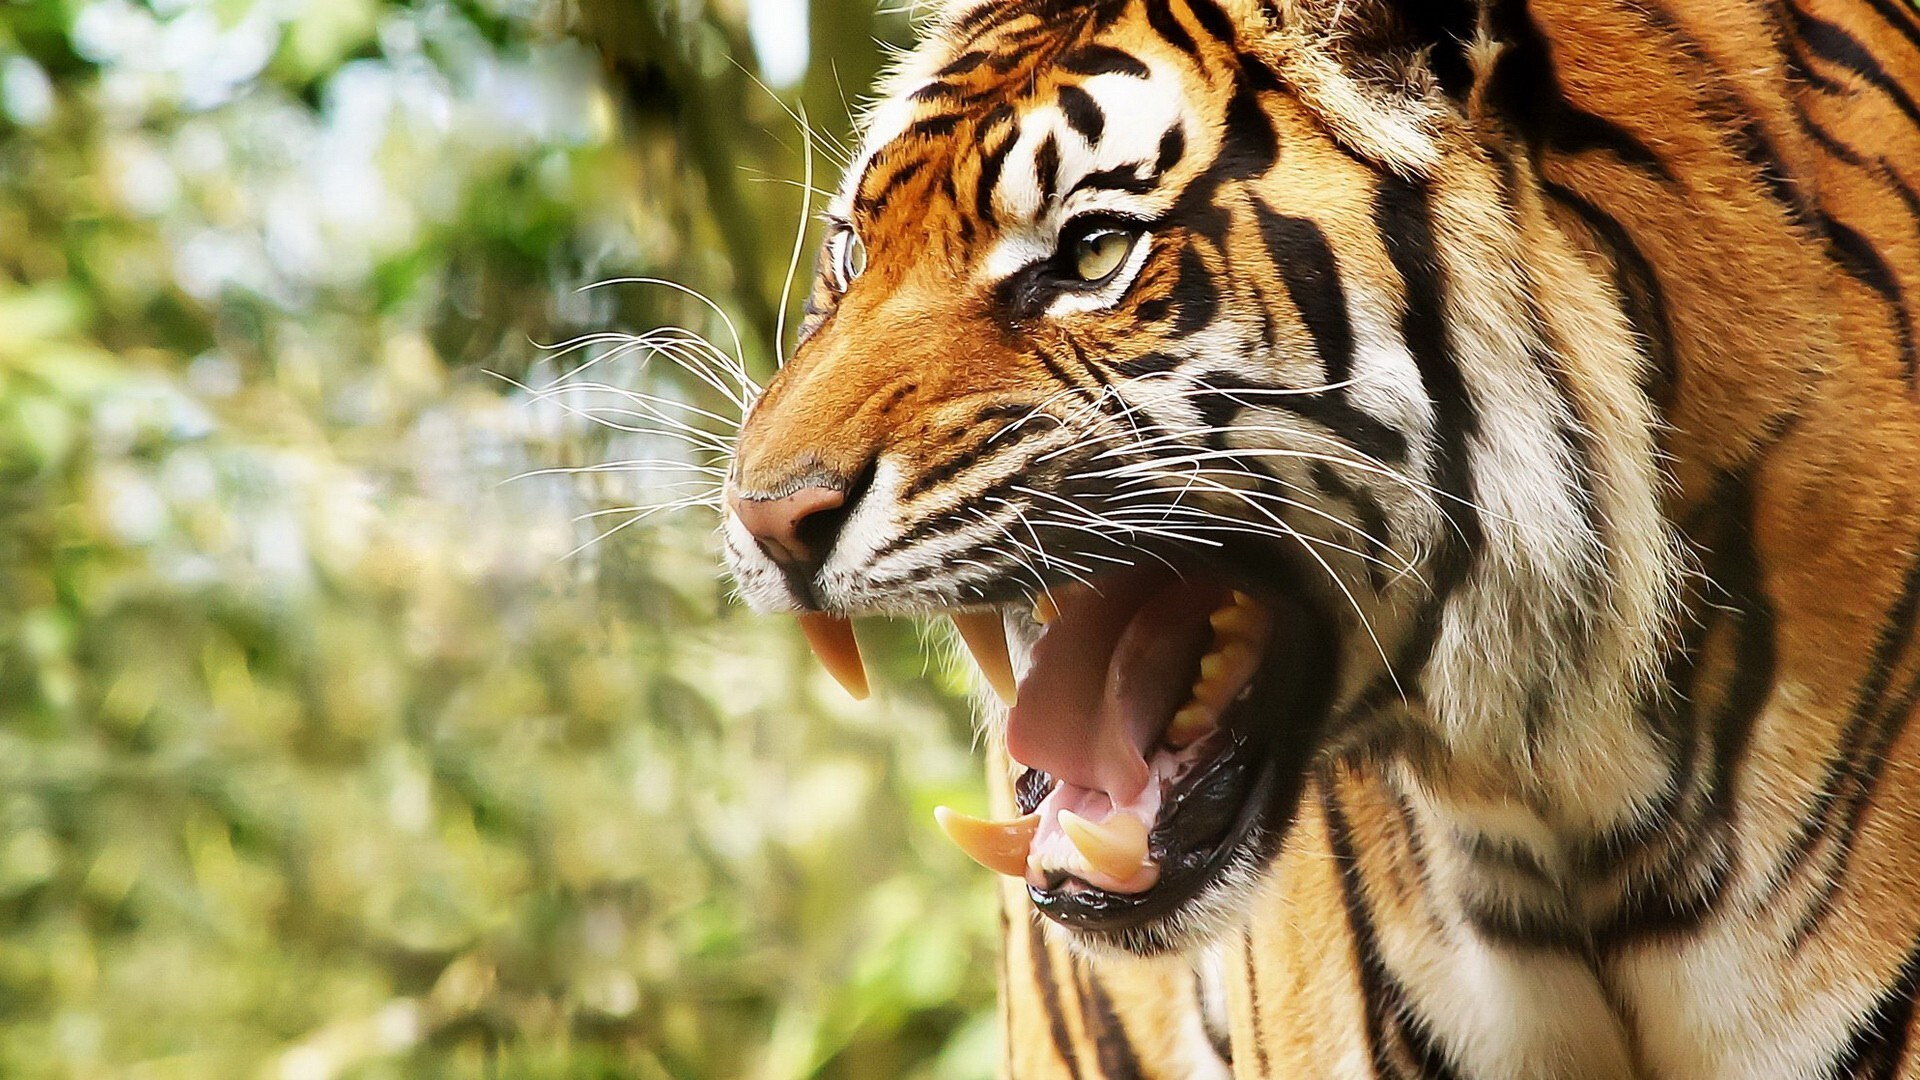 animal tiger hd desktop background wallpapers | hd wallpapers